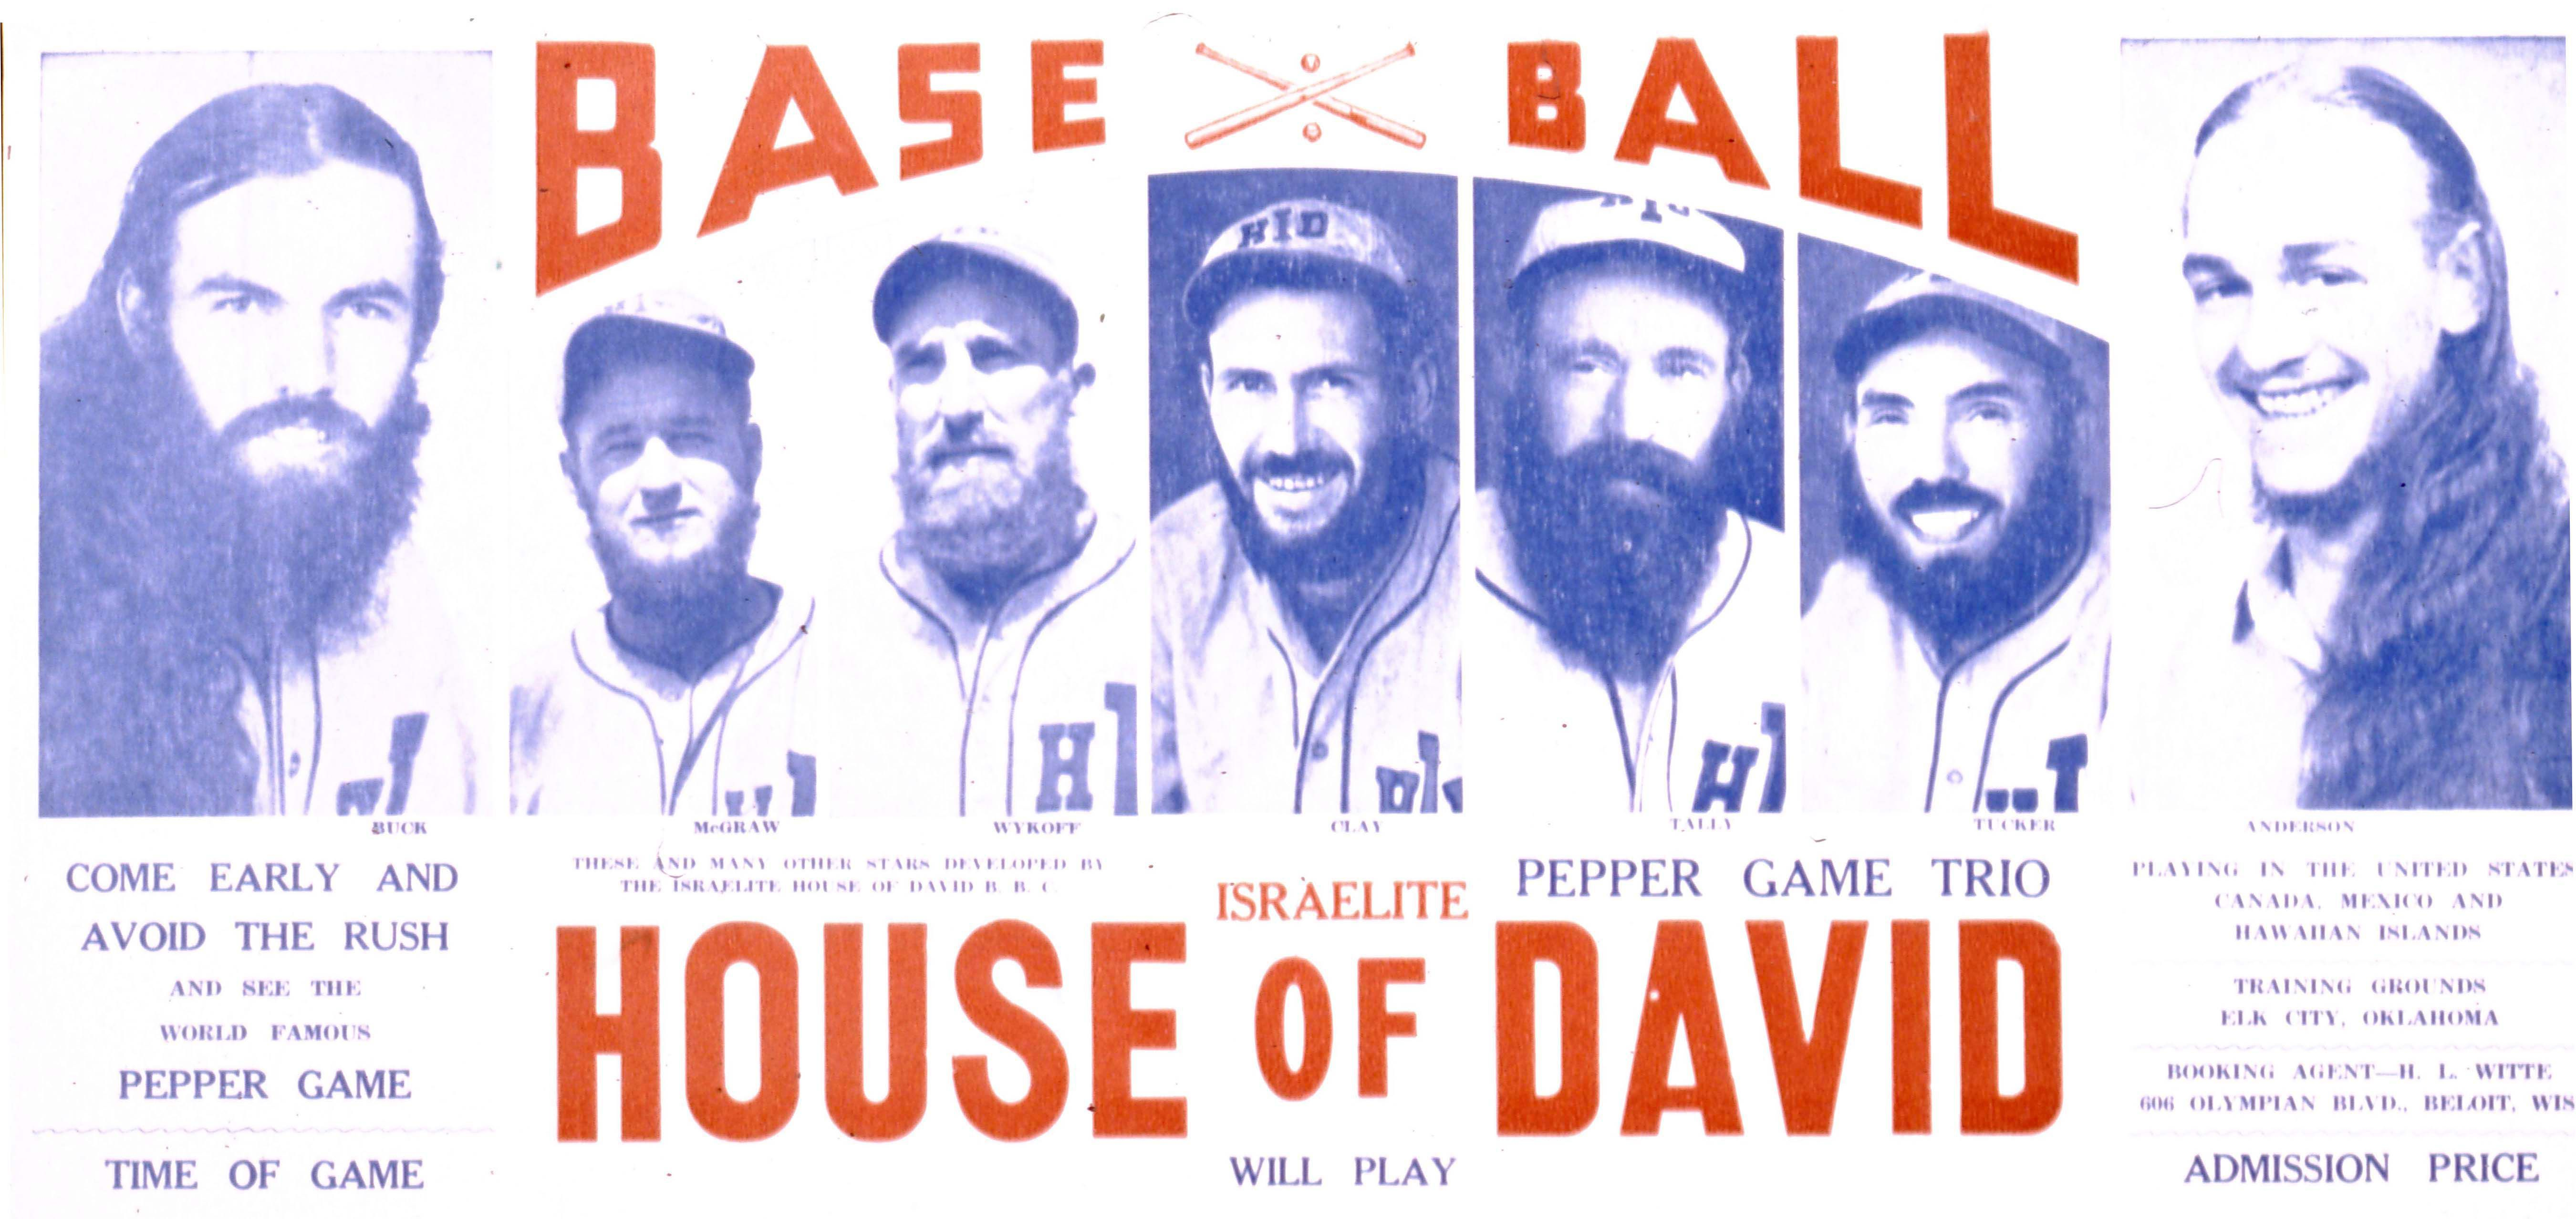 How an apocalyptic cult invented baseball beard power - The